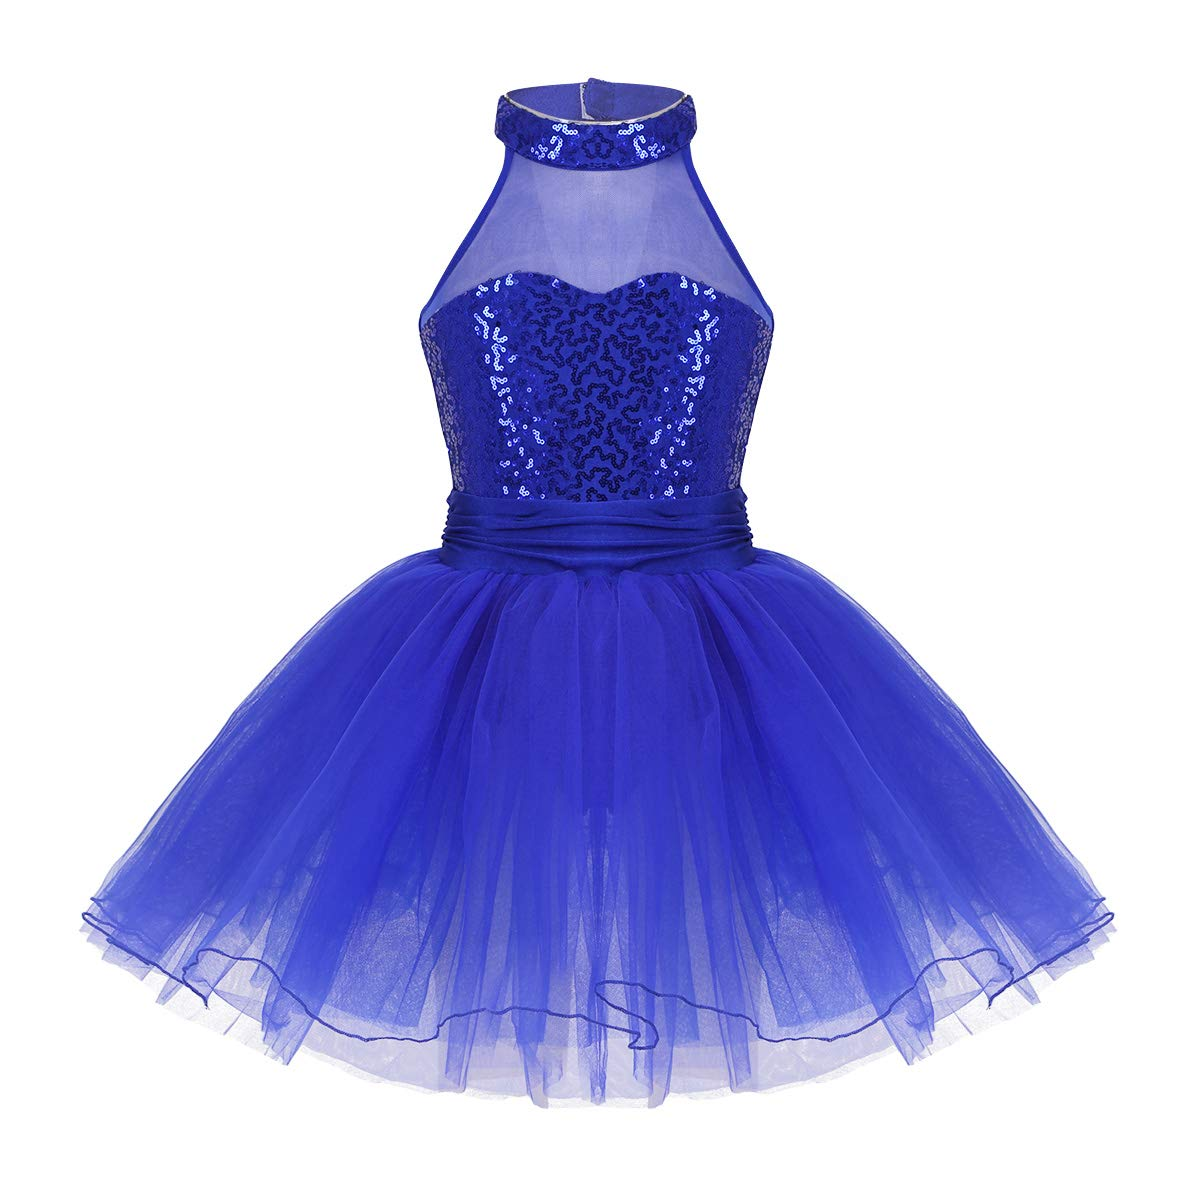 iEFiEL Kids Girls' Sequined Camisole Ballet Tutu Dress Ballerina Leotard Outfit Dance Wear Costumes Blue 7-8 by iEFiEL